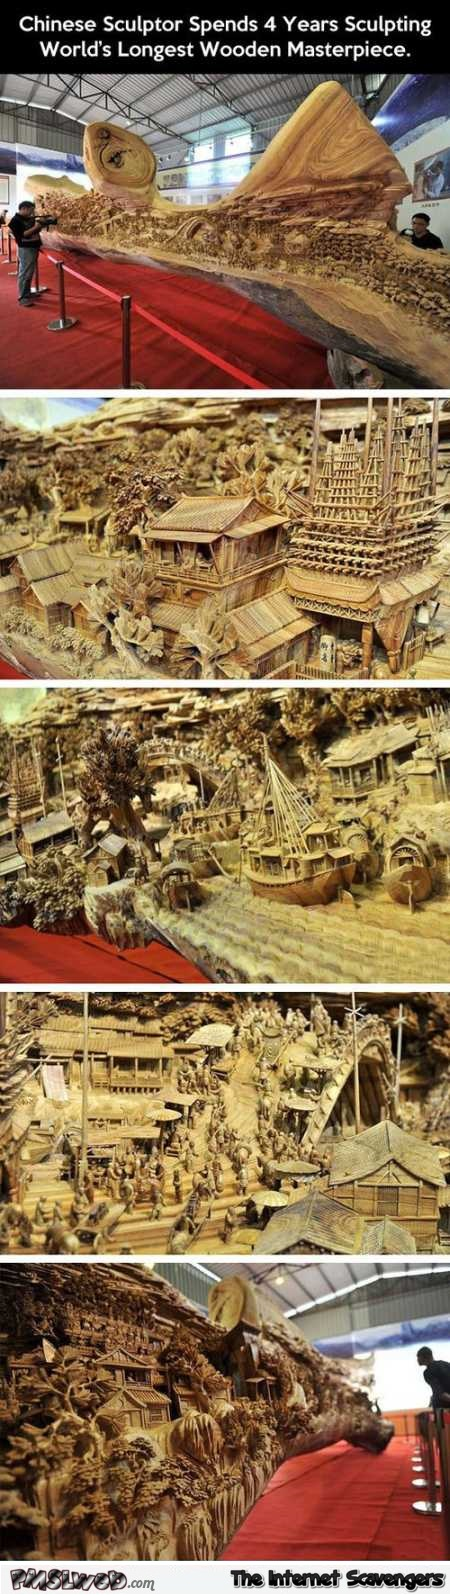 World's longest wooden masterpiece @PMSLweb.com